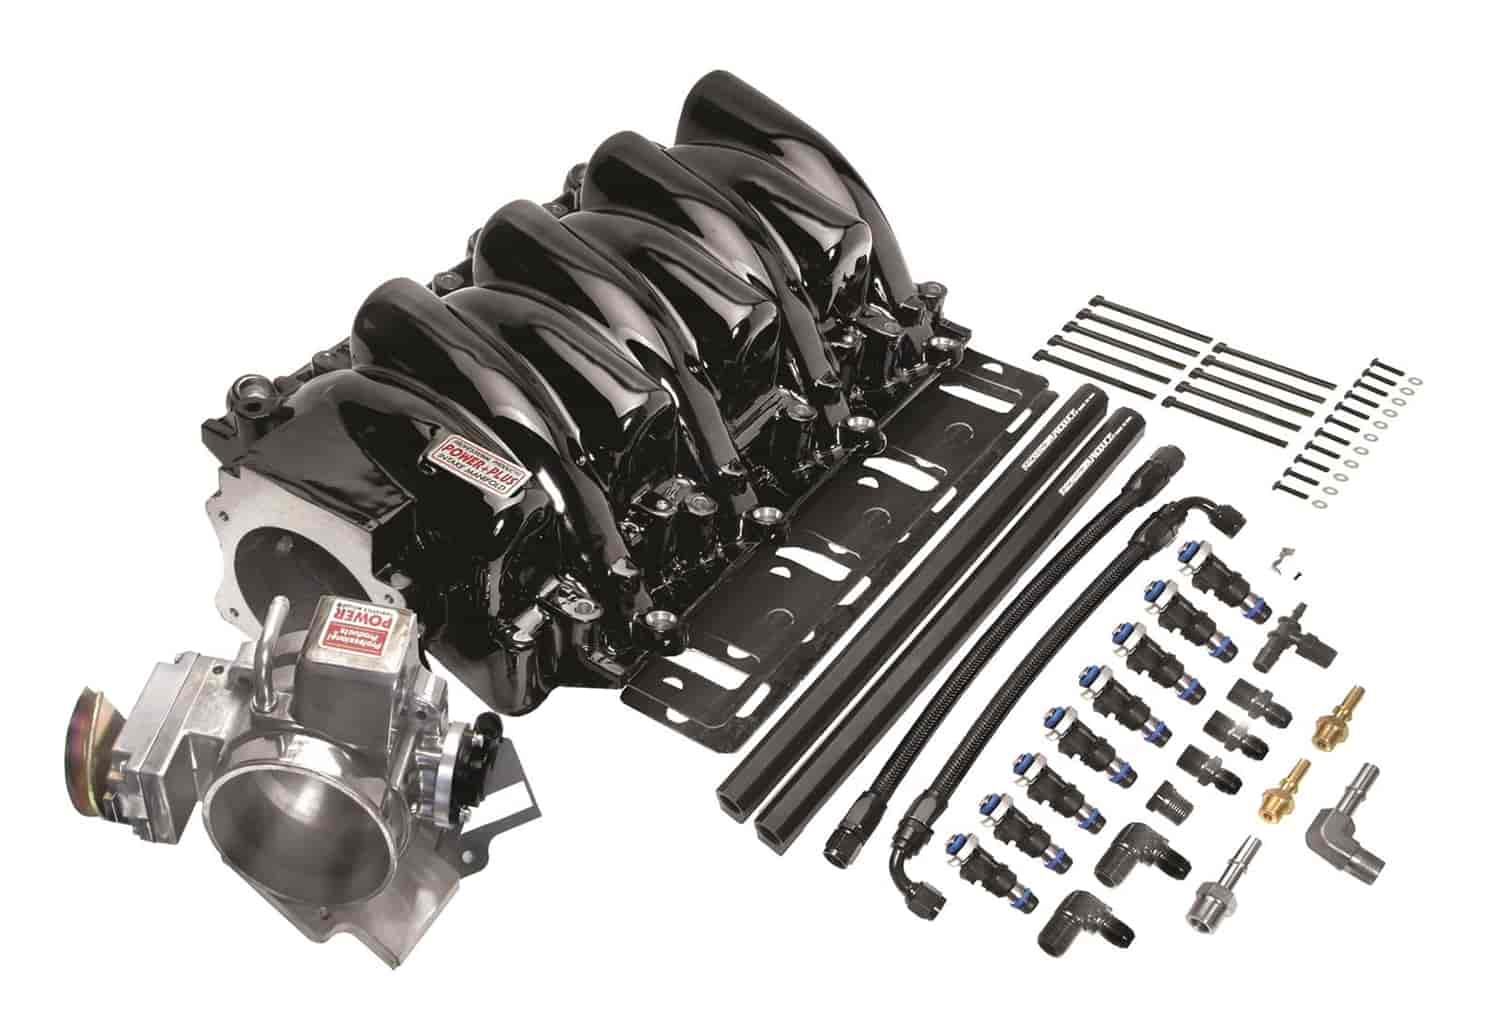 Professional Products Typhoon Intake Manifold LS1 Chevrolet EFI with  Throttle Body and Injectors